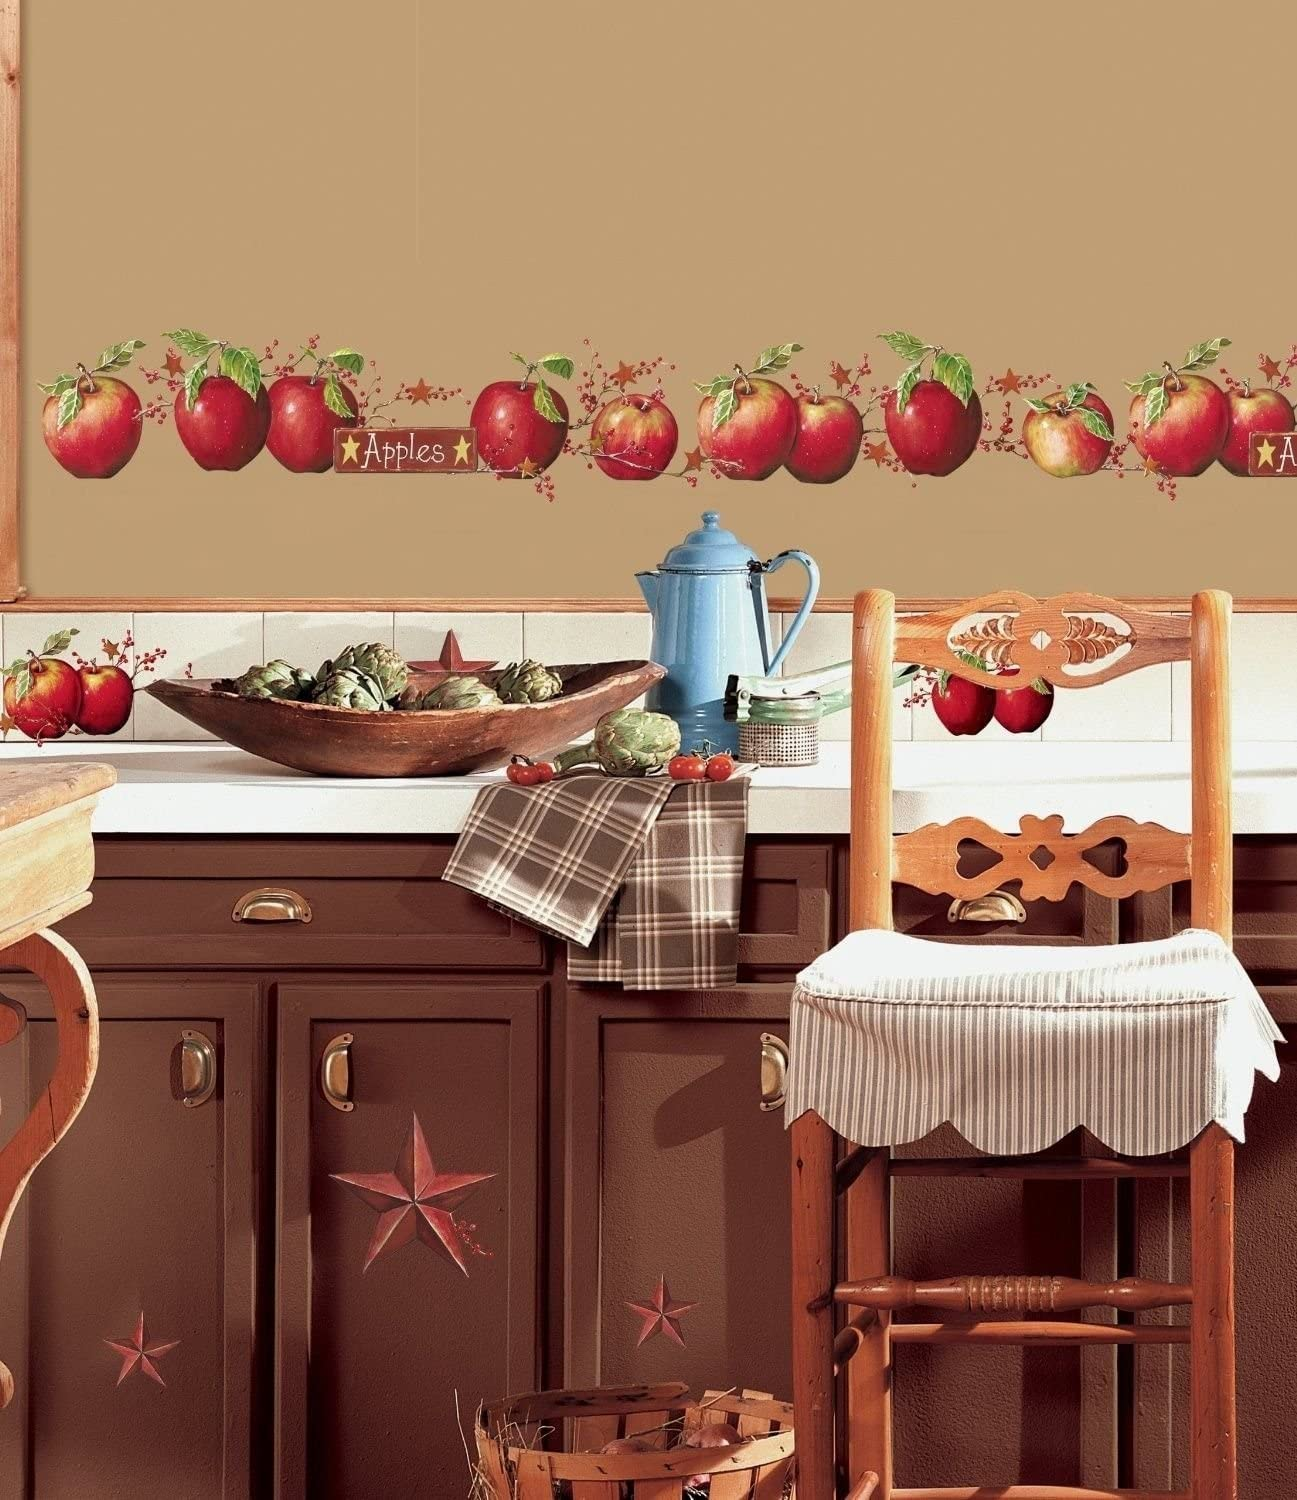 Apples 8 Big Wall Decals Country Stars Border Kitchen Stickers